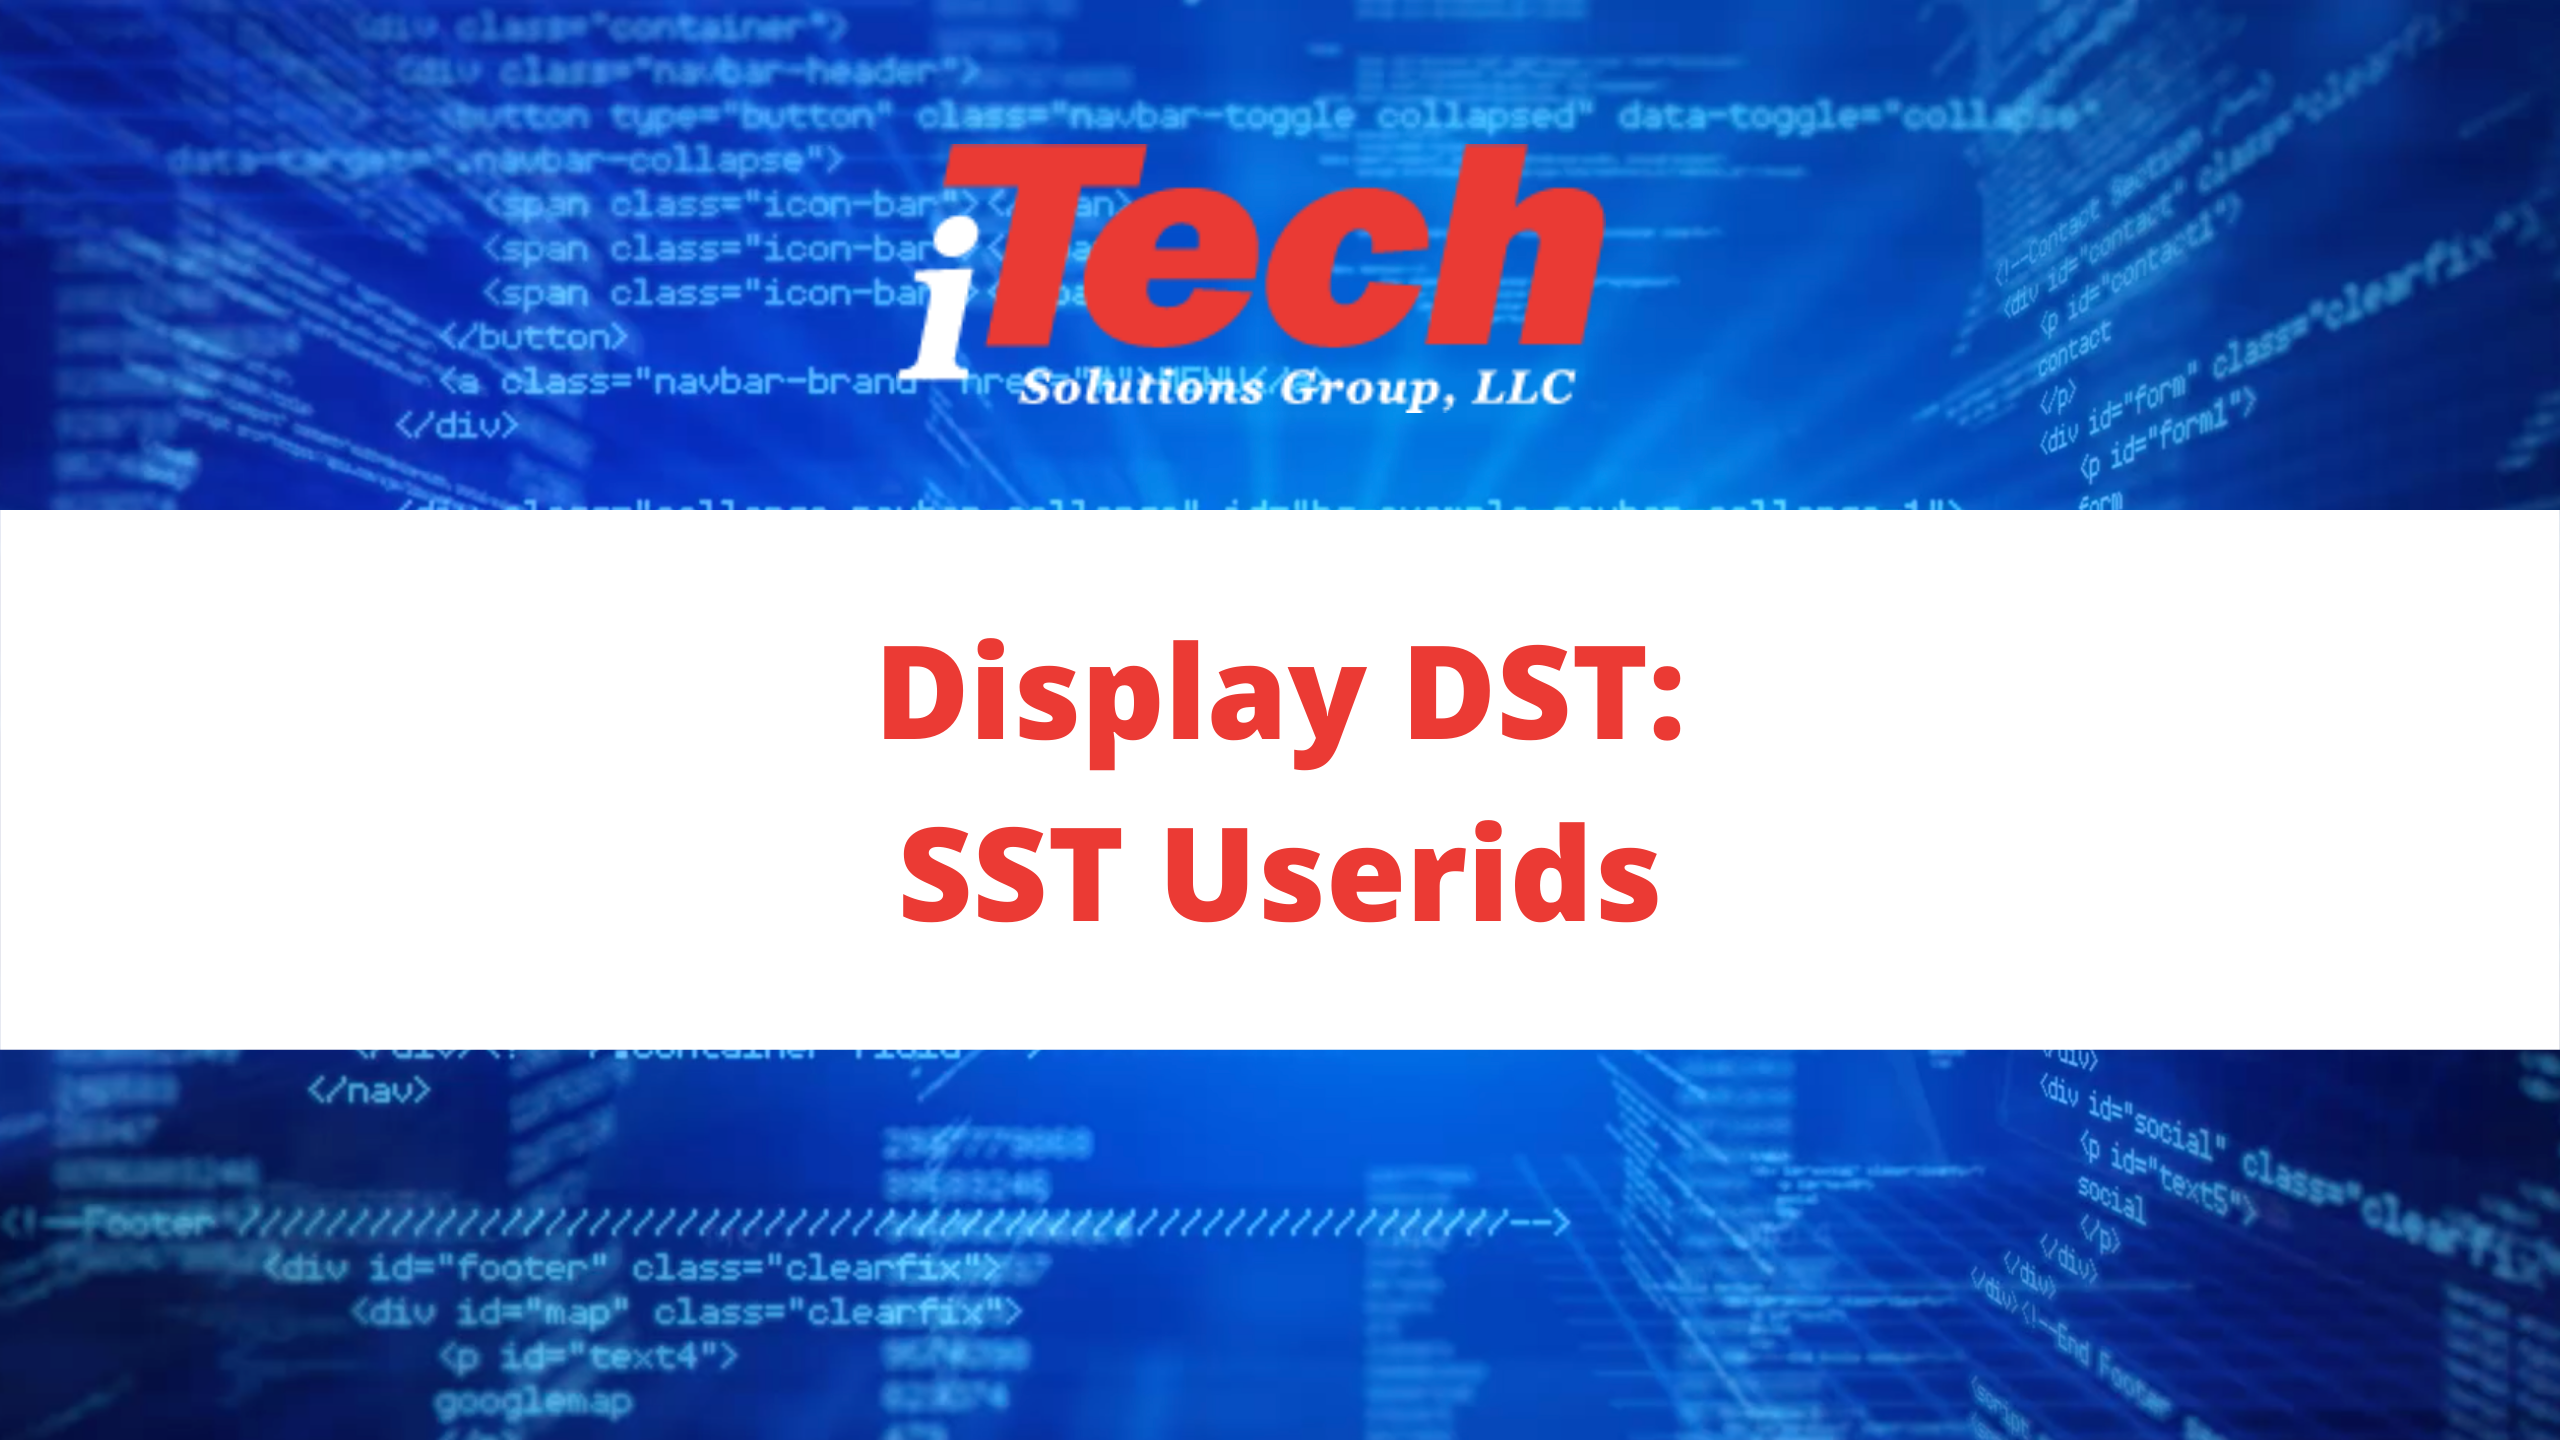 Display DST_SST Userids